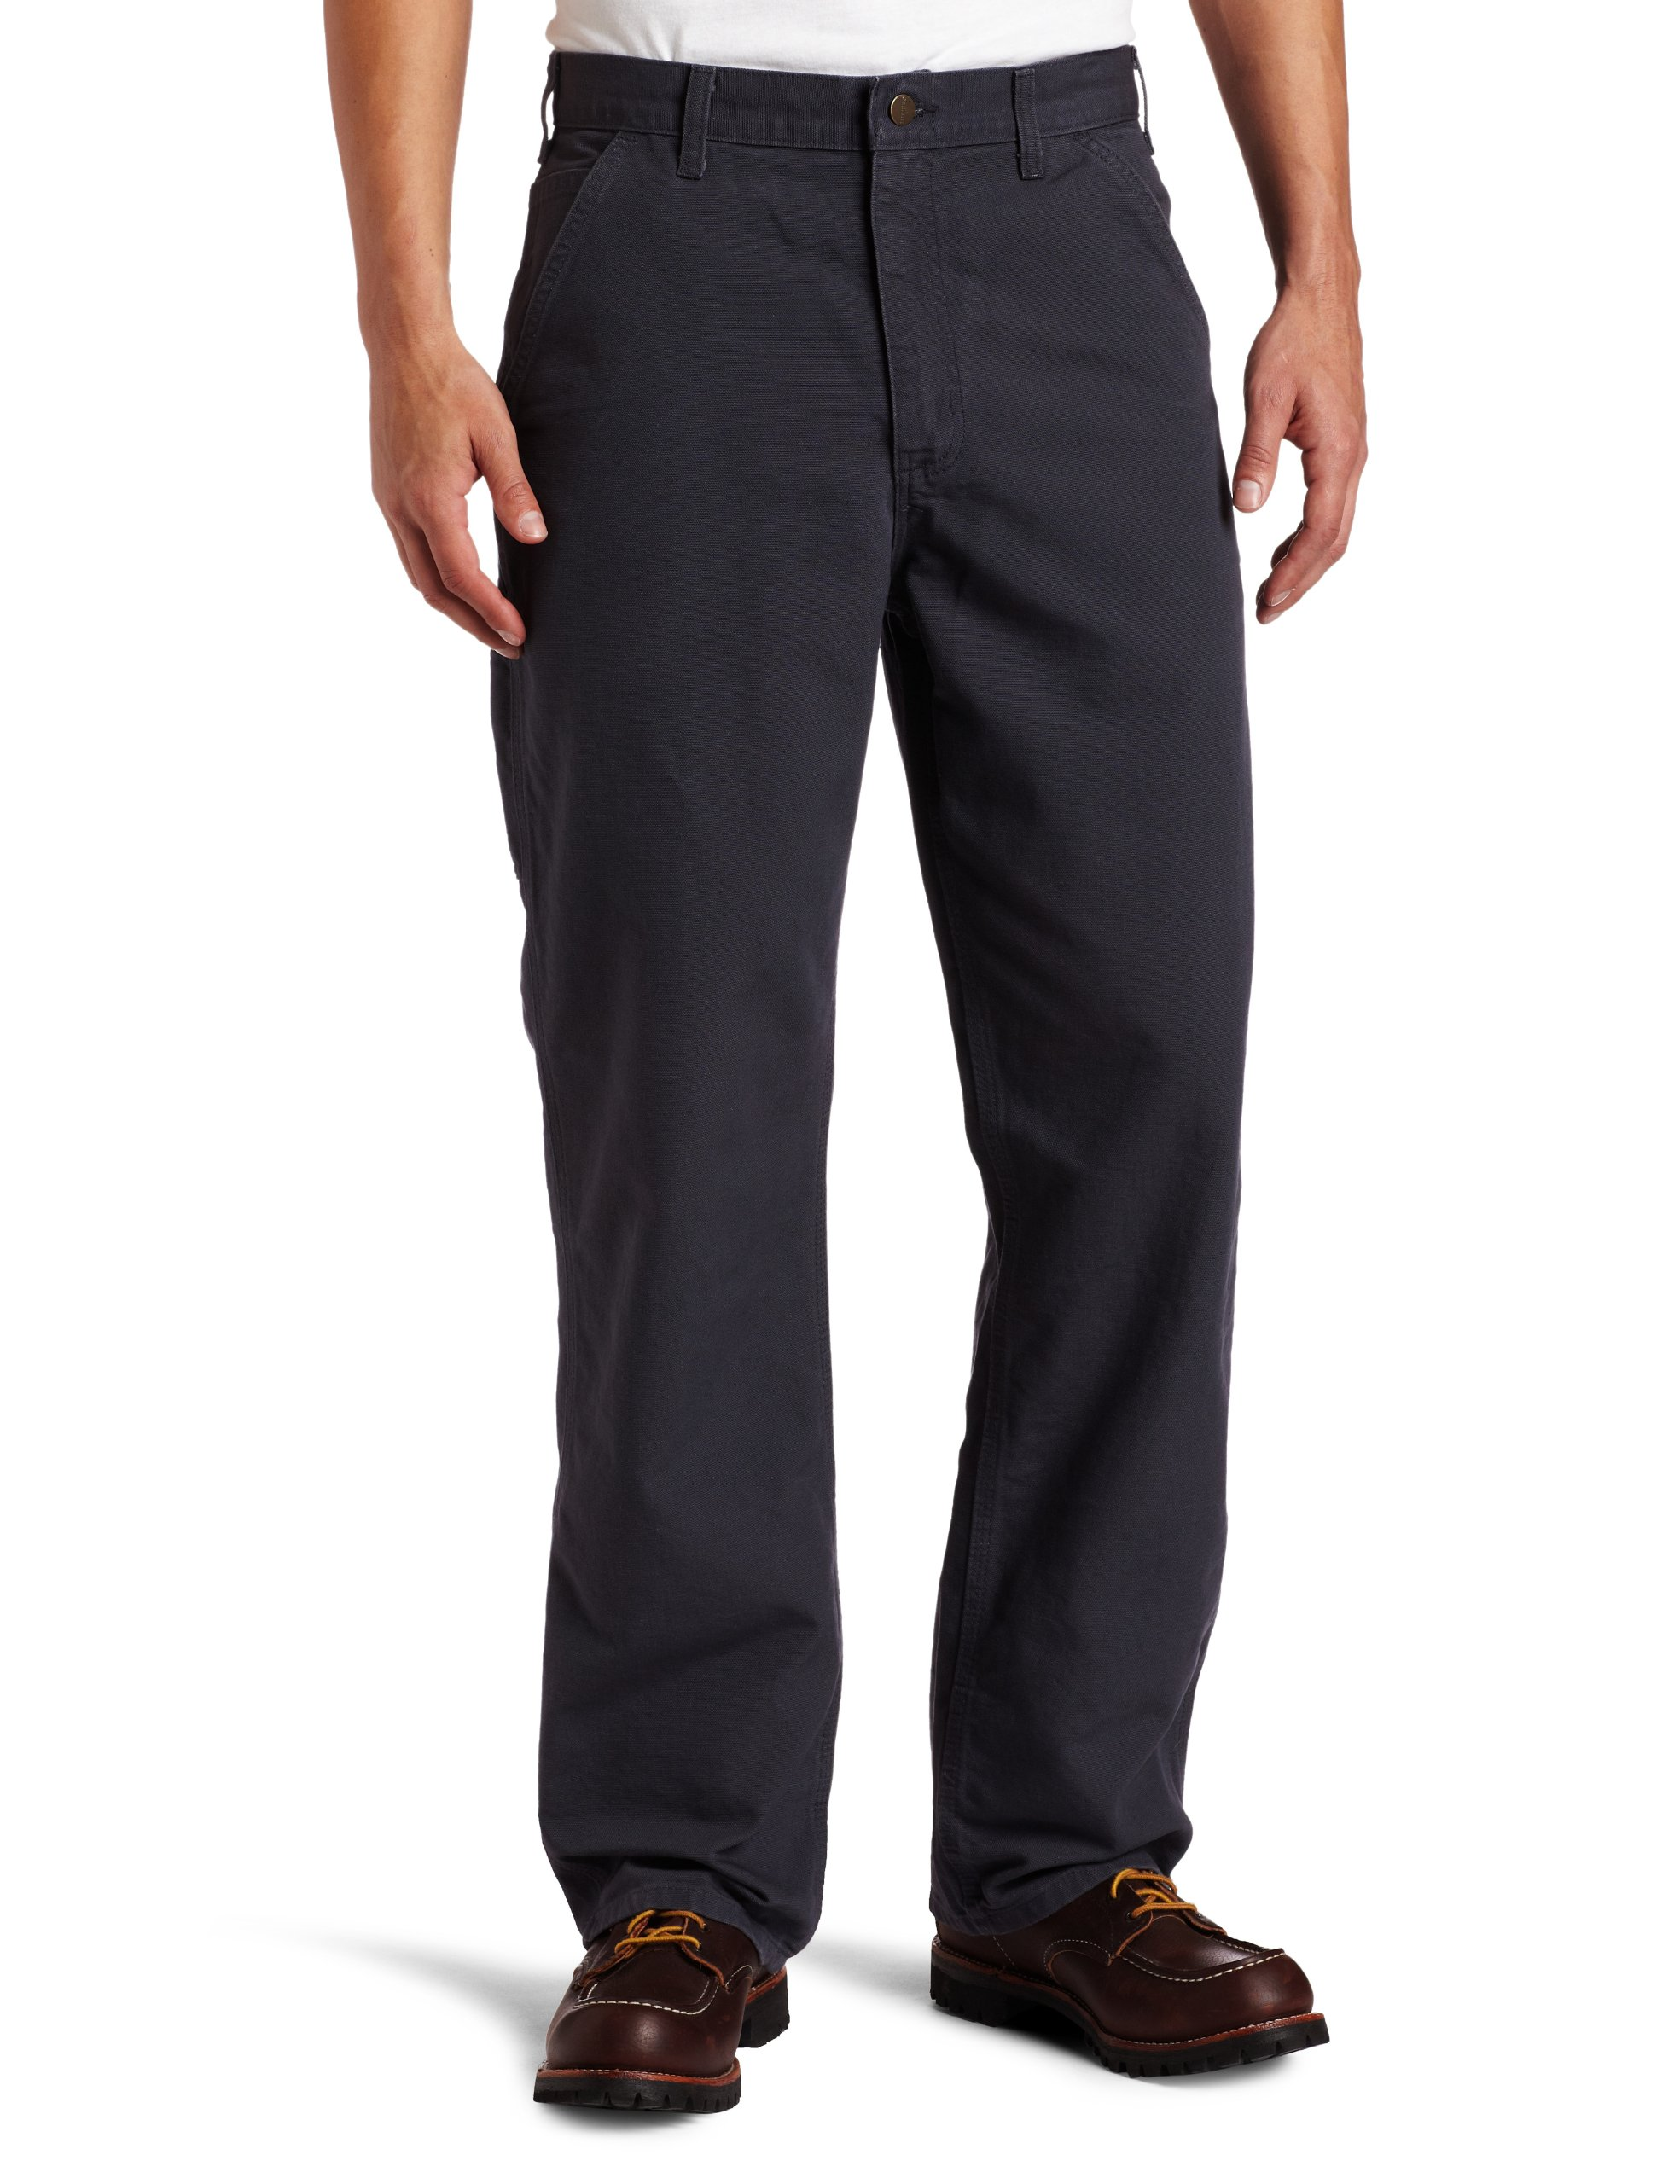 Carhartt Men's Washed Duck Work Dungaree Pant,Petrol Blue,44W x 30L